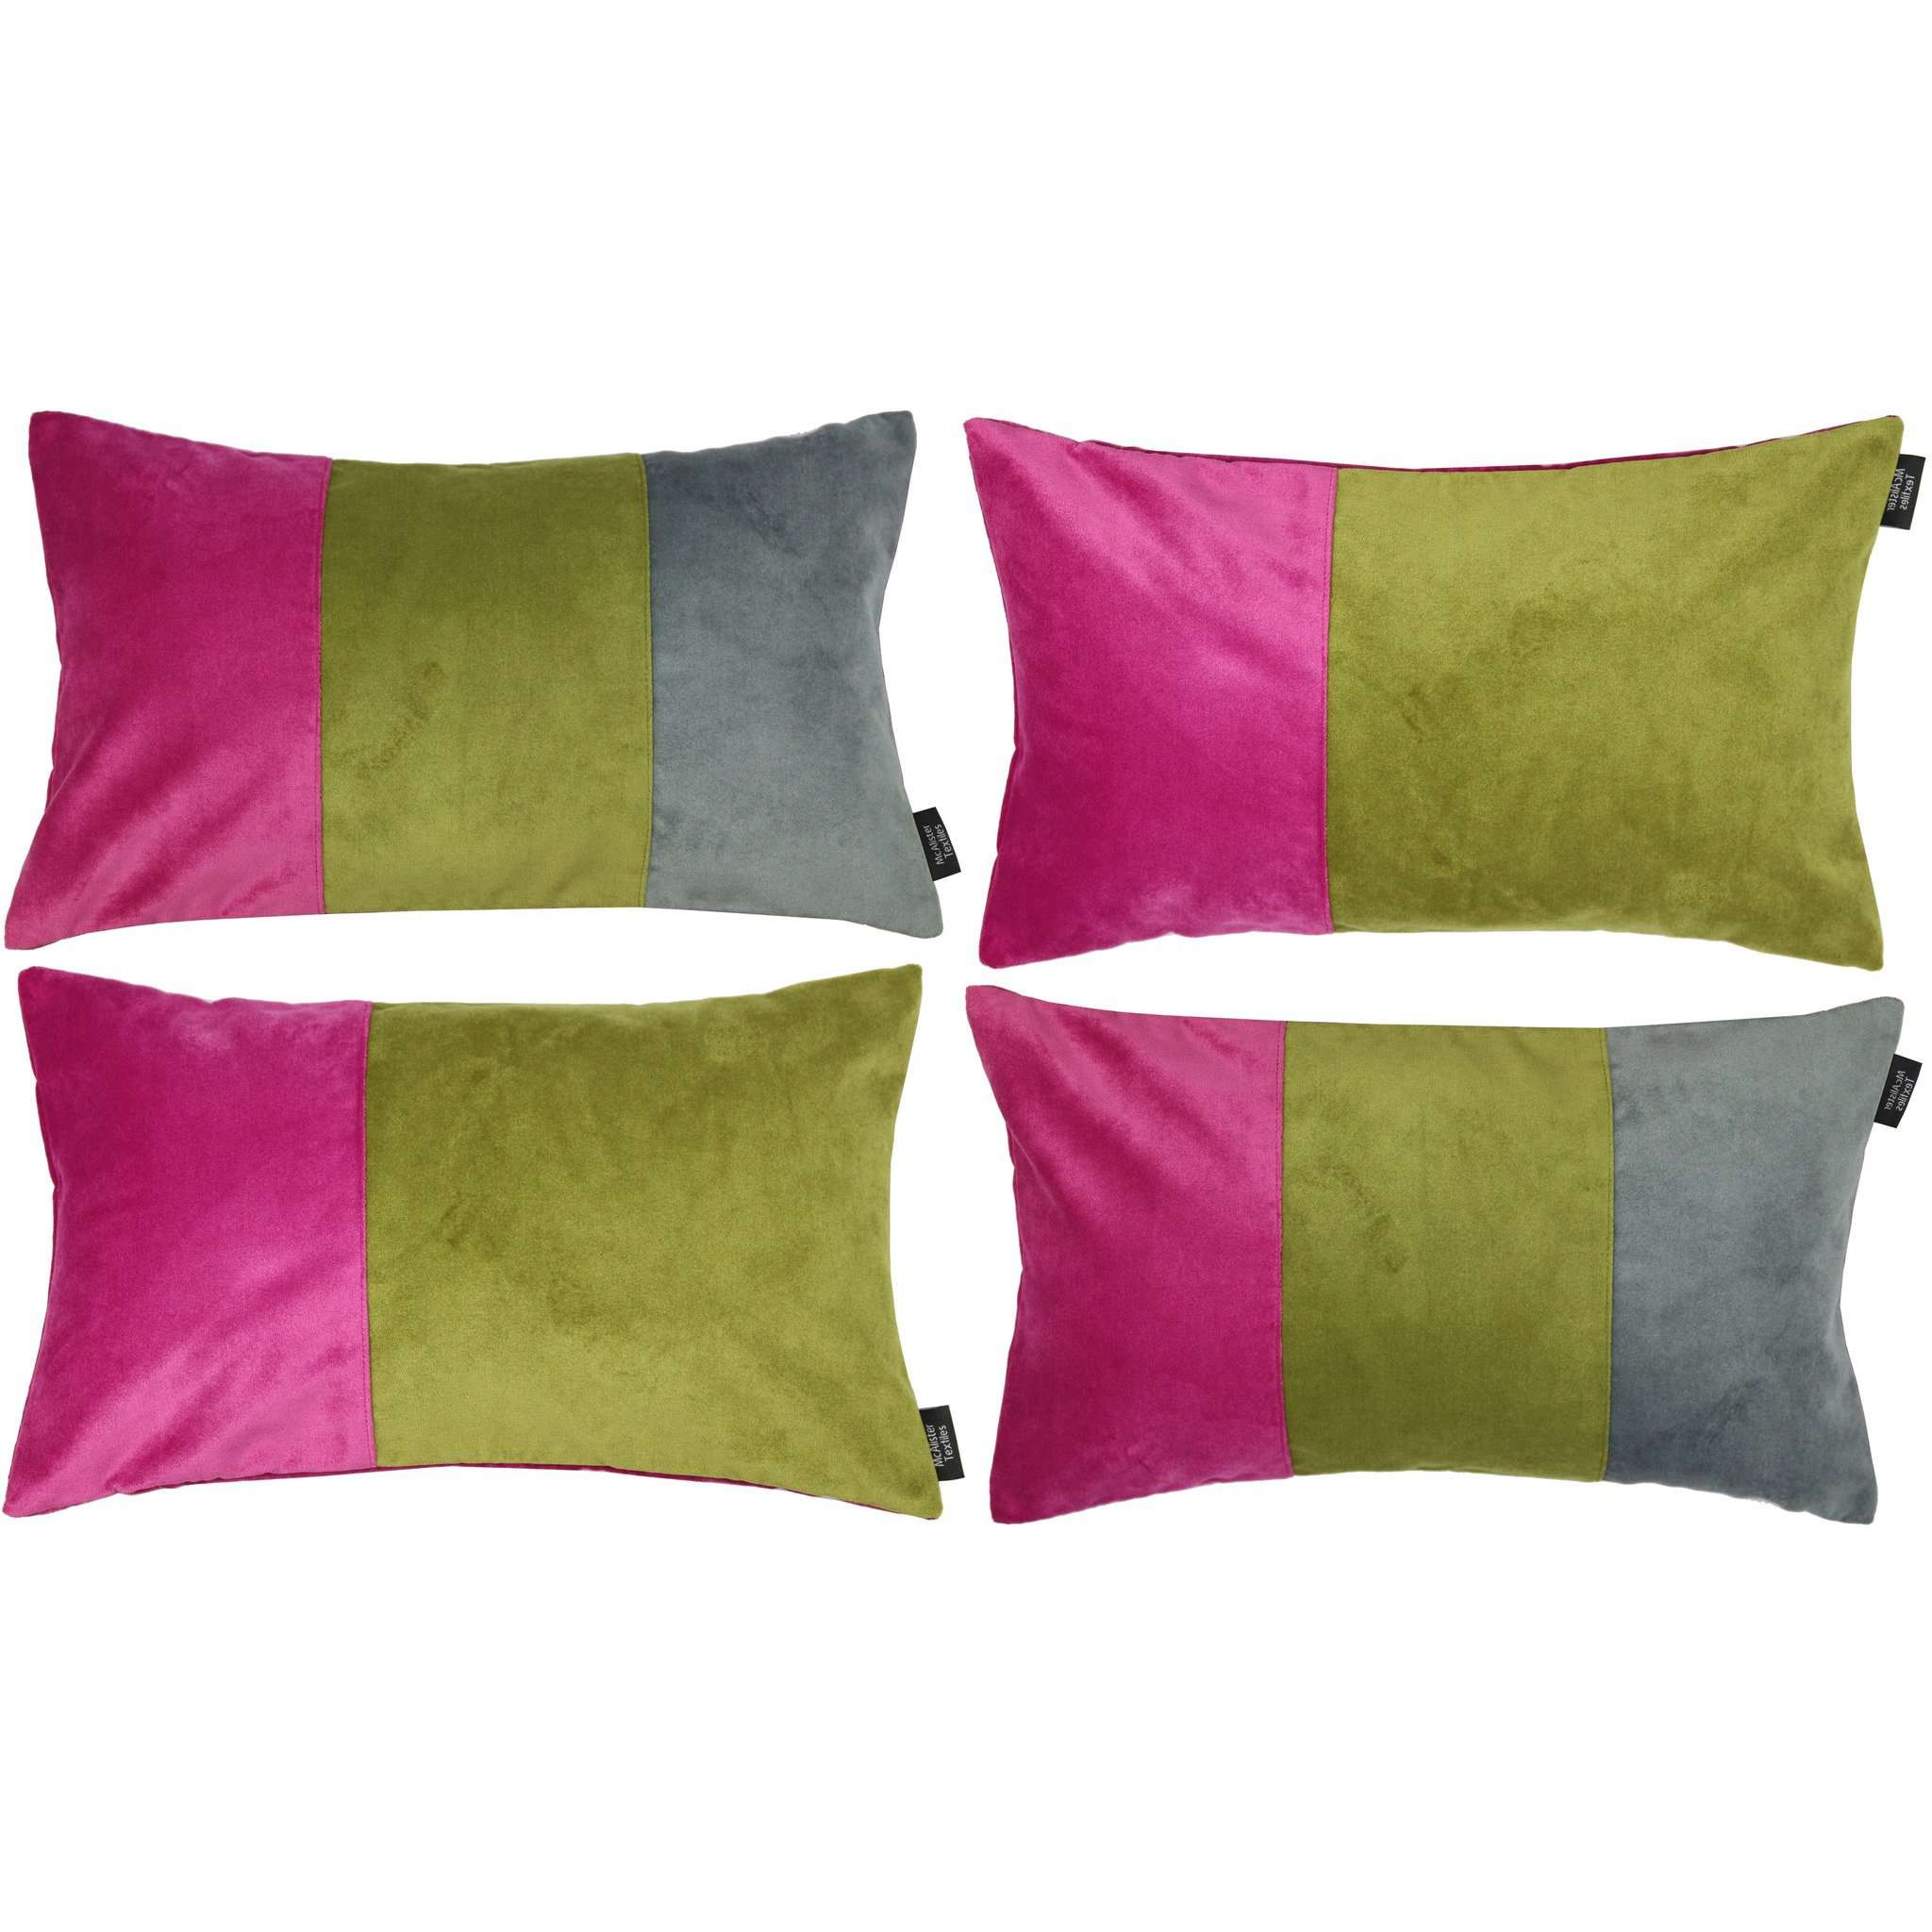 McAlister Textiles Patchwork Velvet Pink, Green + Grey 50cm x 30cm Pillow Sets Pillow Set of 4 Cushion Covers